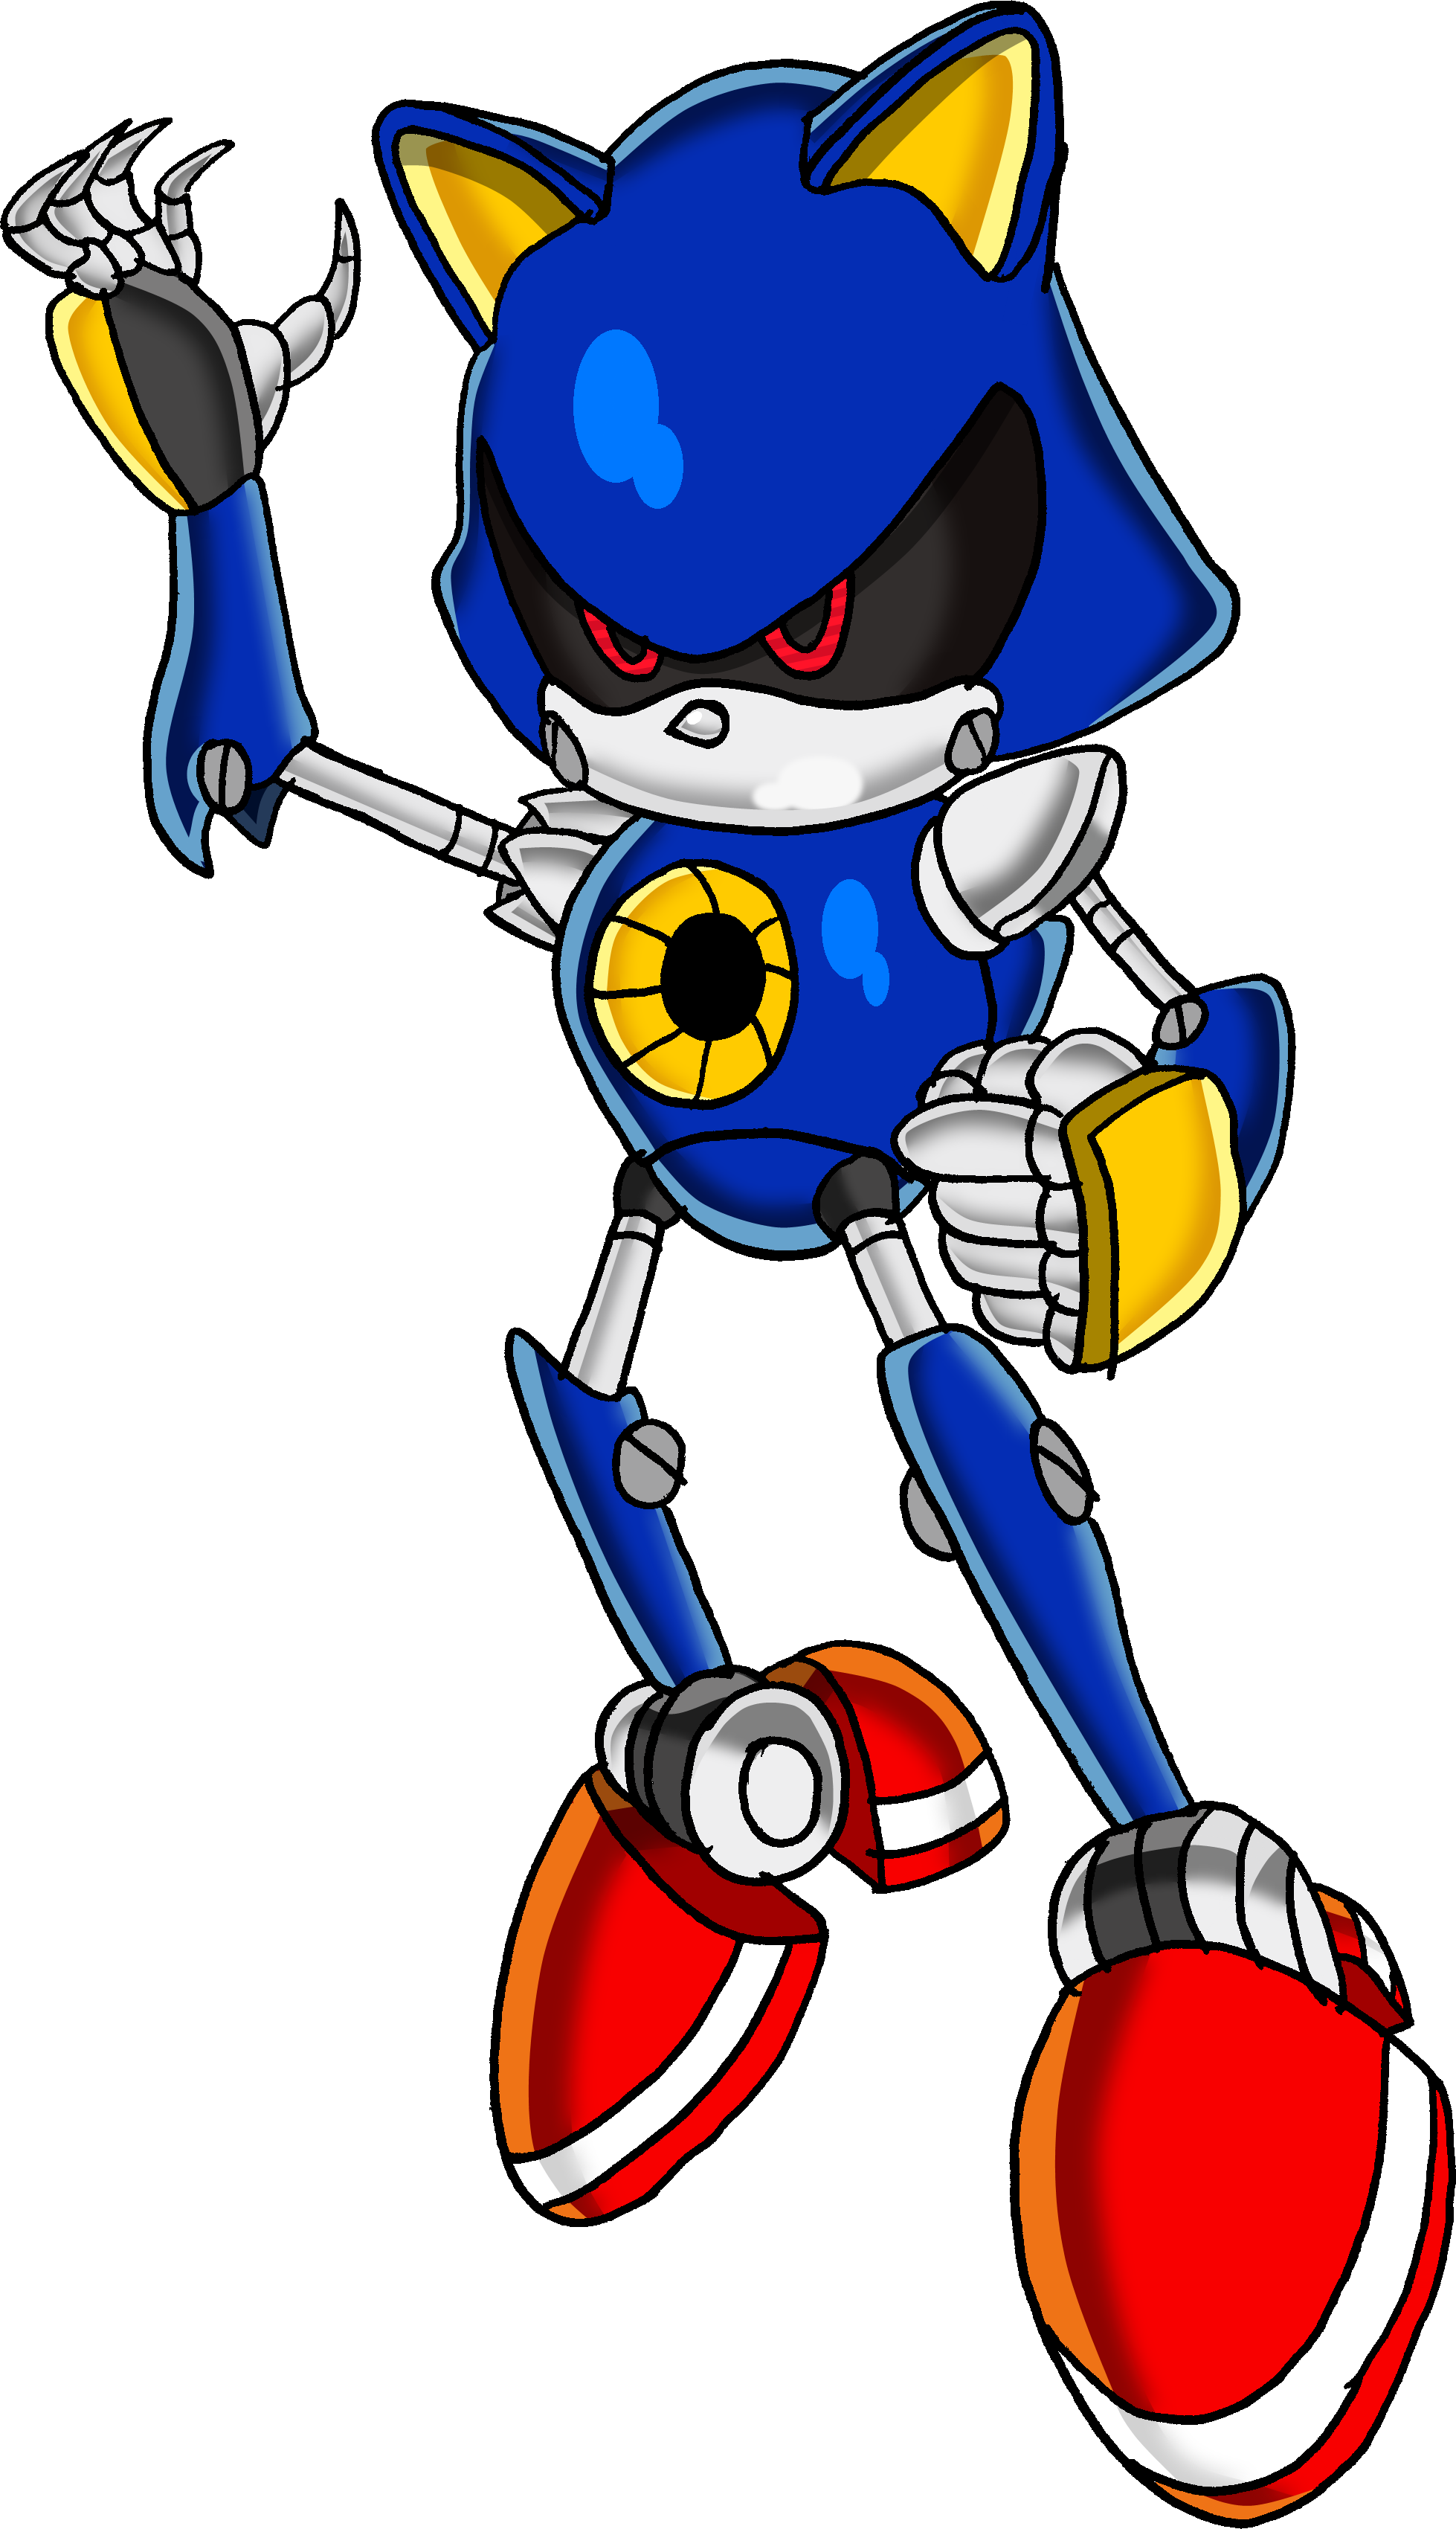 Image - Metal Sonic Tails19950.png | Sonic News Network ...